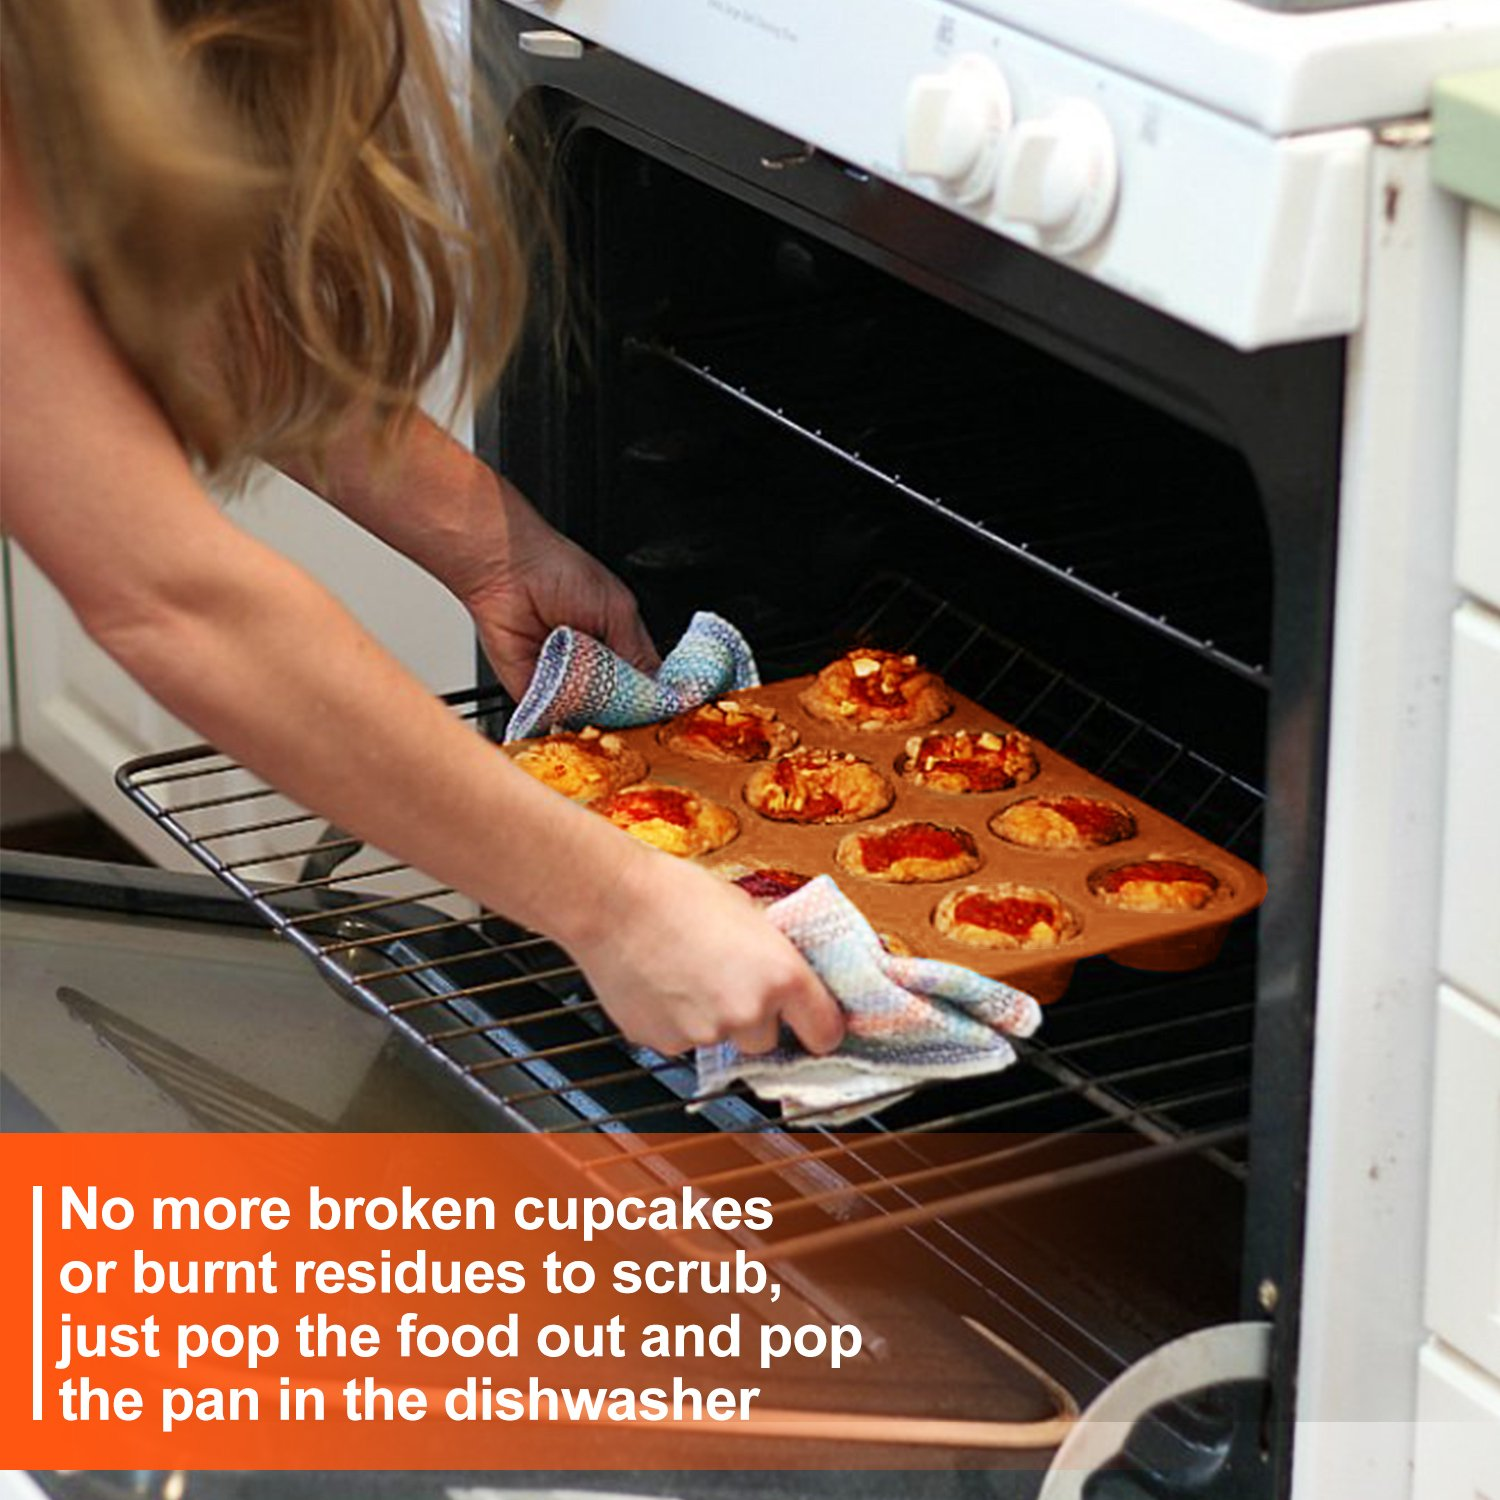 FITNATE Bakeware Silicone Muffin Pan 12 Cup, BPA-free, Non Stick by FITNATE (Image #2)